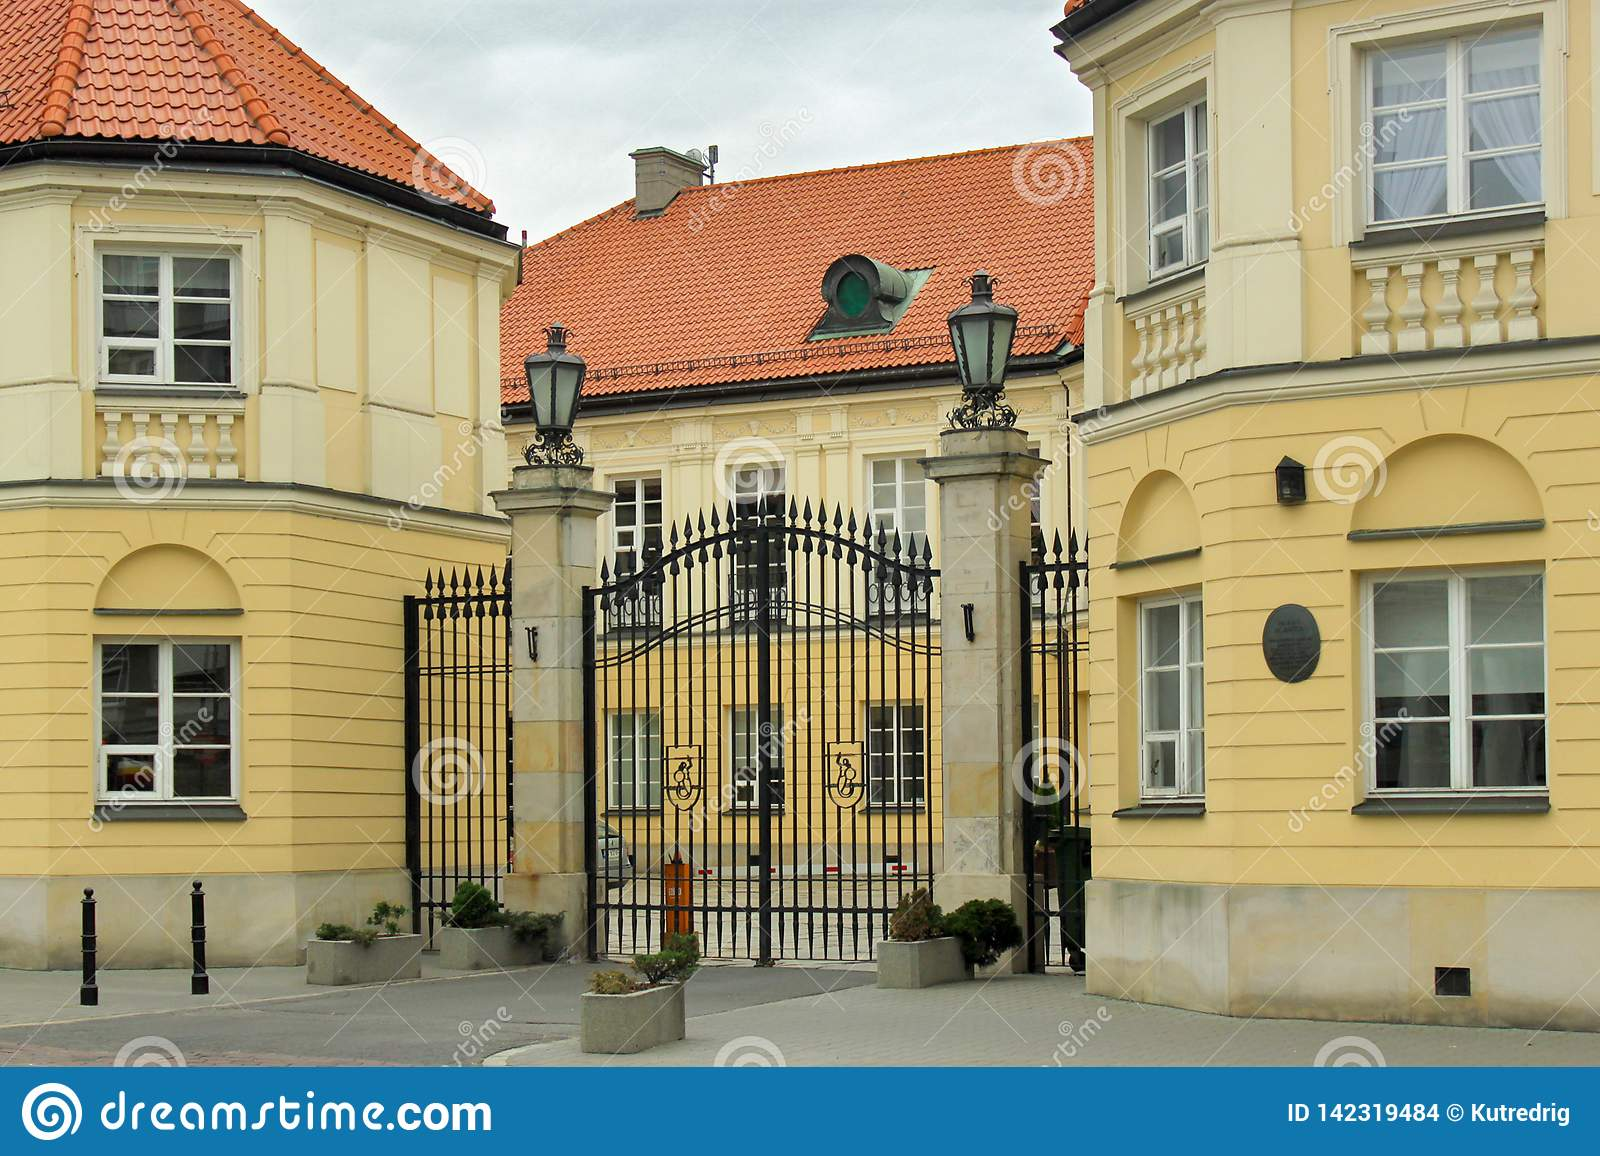 WARSAW, POLAND - MAY 12, 2012: View of the Blank Palace in Warsaw.